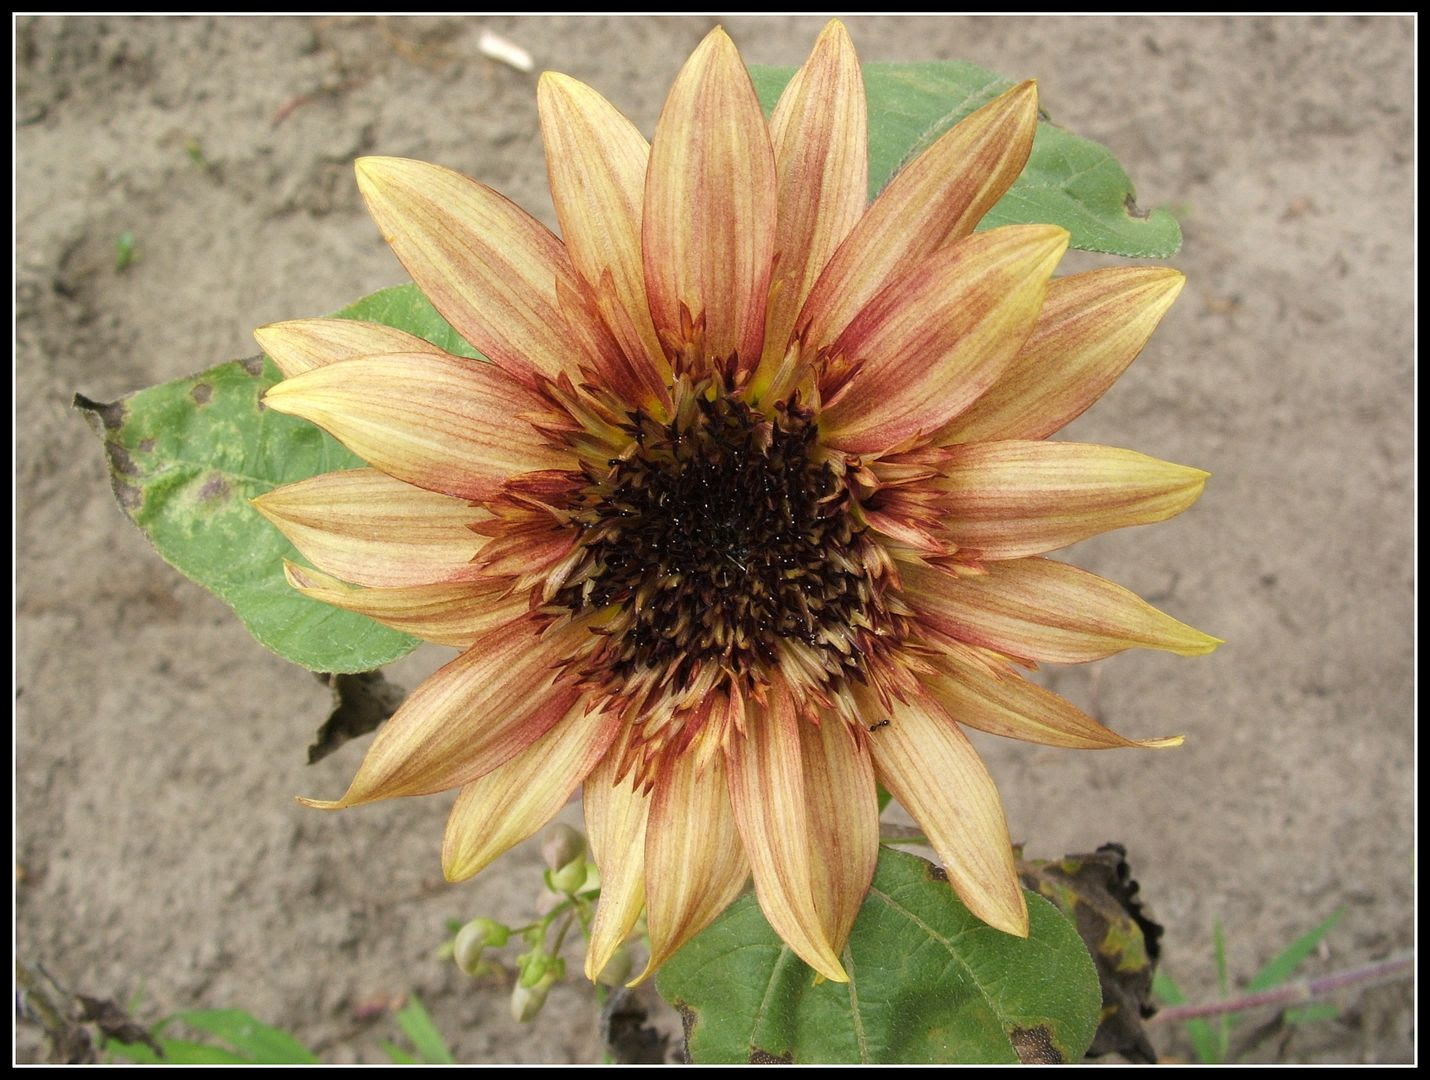 Starburst Sunflowers by Angie Ouellette-Tower for godsgrowinggarden.com photo 018_zps66cc262b.jpg